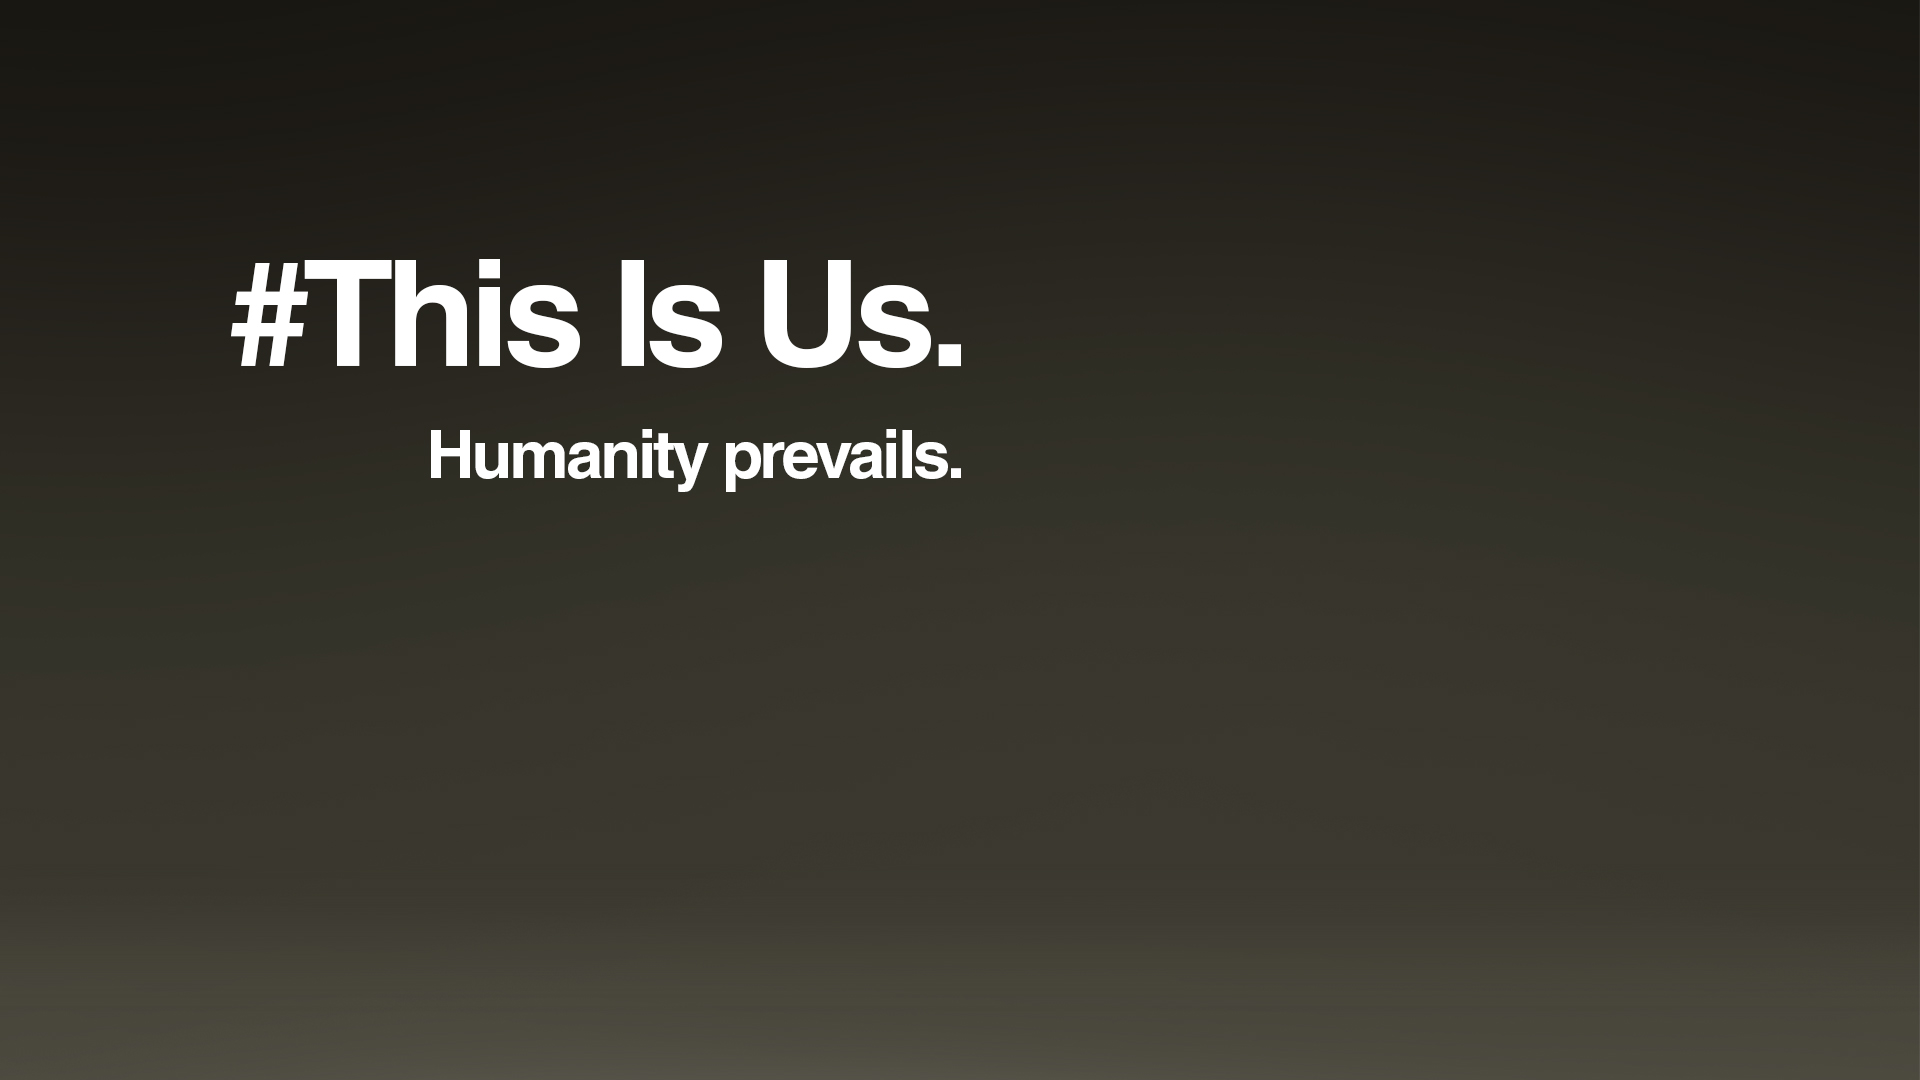 [This Is Us] Humanity prevails parody.